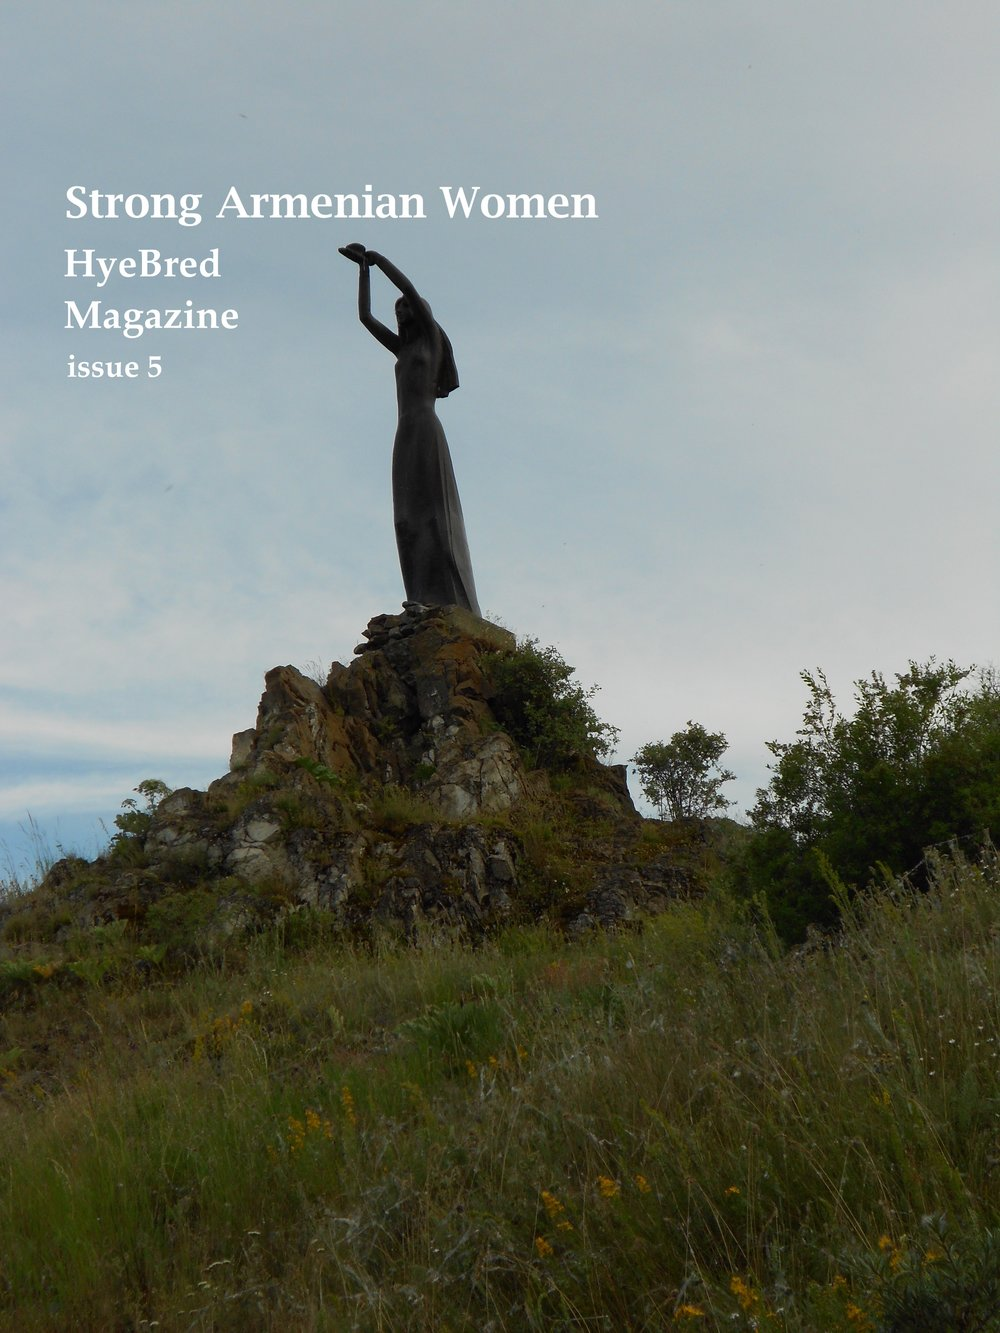 HYEBRED MAGAZINE SPRING 2019 ISSUE: STRONG ARMENIAN WOMEN - Send in your fiction, nonfiction, poetry, art, photography, and music by March 4, 2019 for a chance to be published in issue 5.